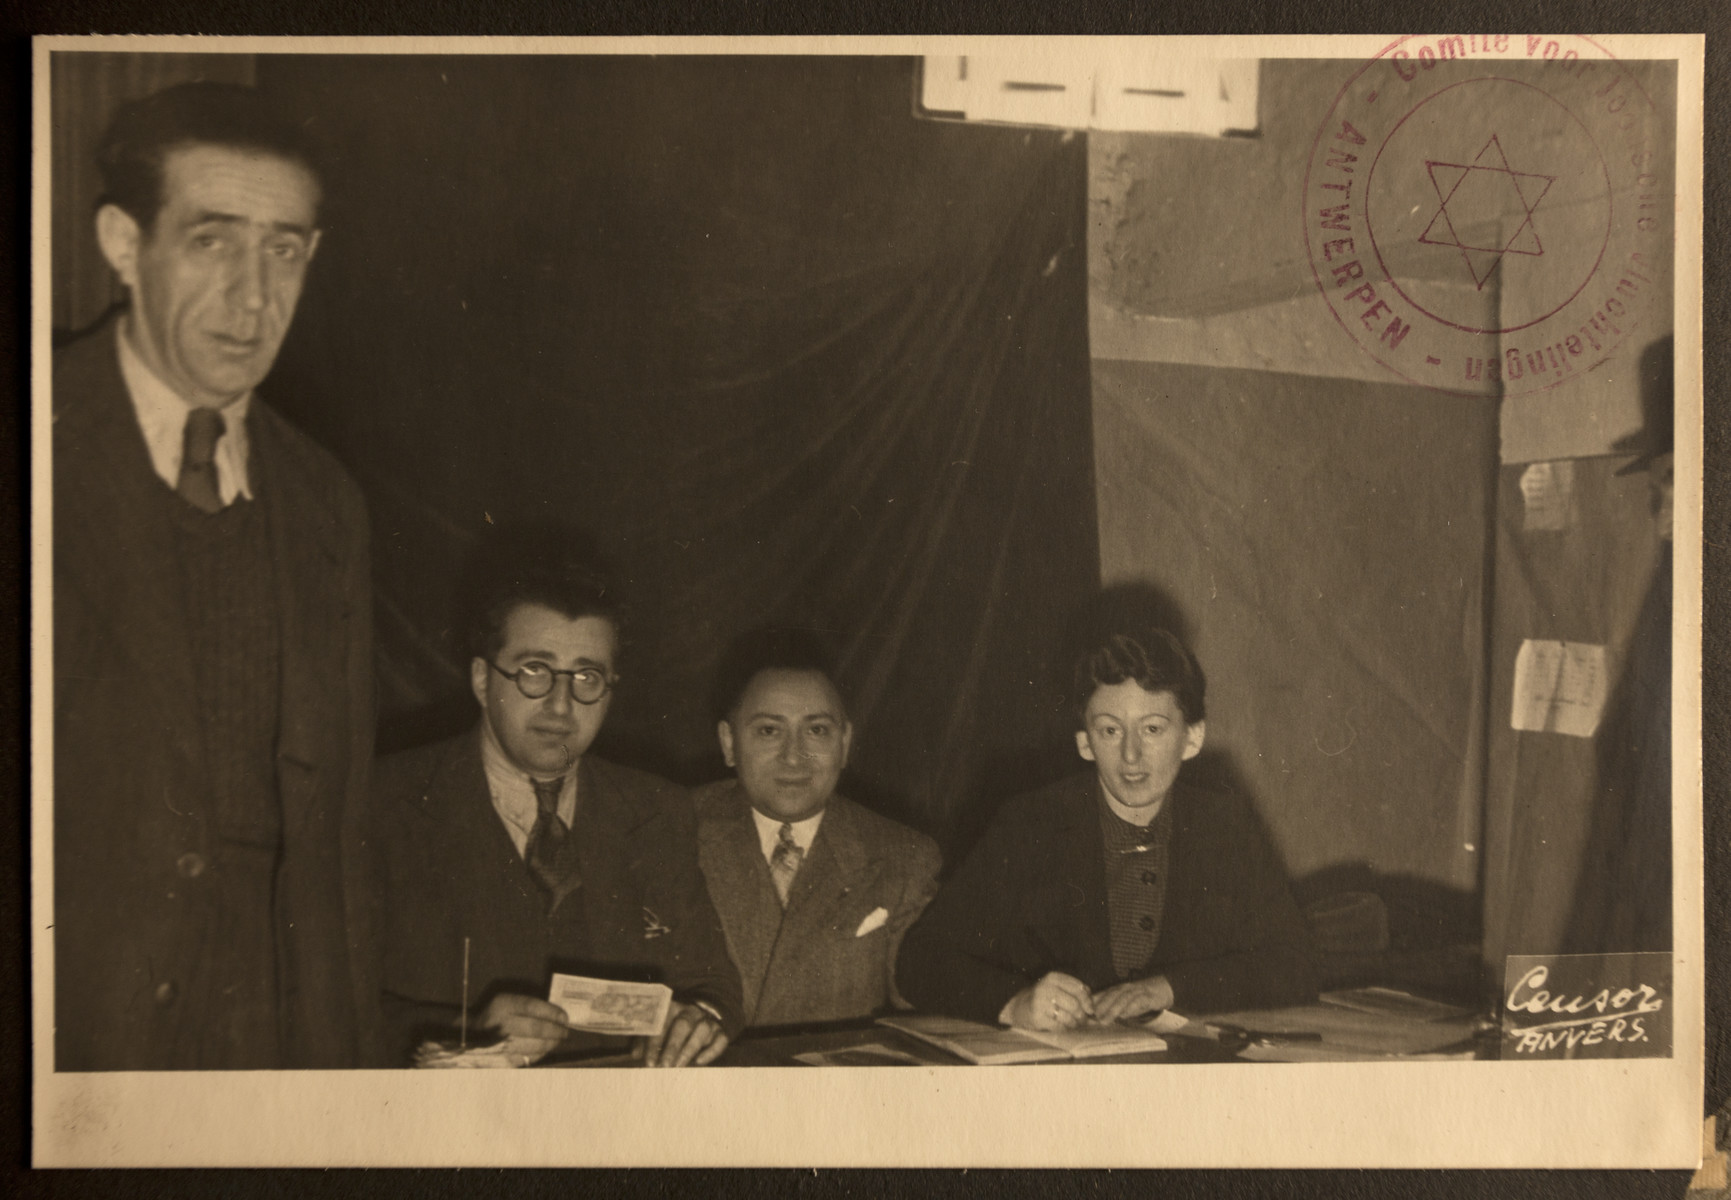 Group portrait of members of the Jewish Refugee Aid Committee of Antwerp.  Leopold Guttman is seated second from the left.